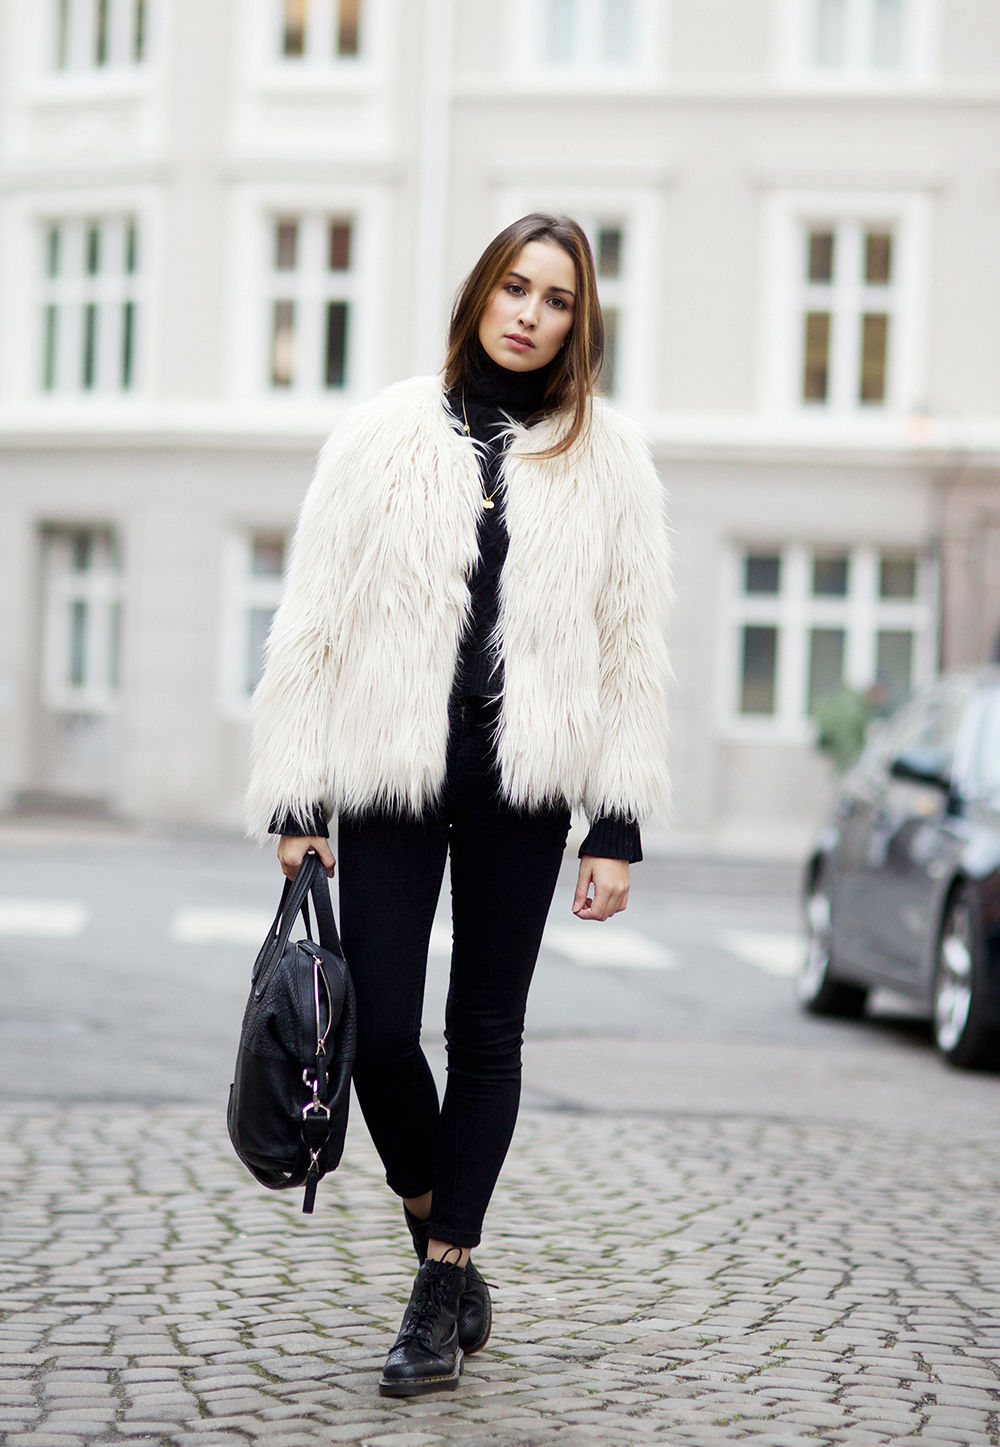 e8900fab28b0 Ingrid Holm is wearing a white shaggy jacket from Lindex